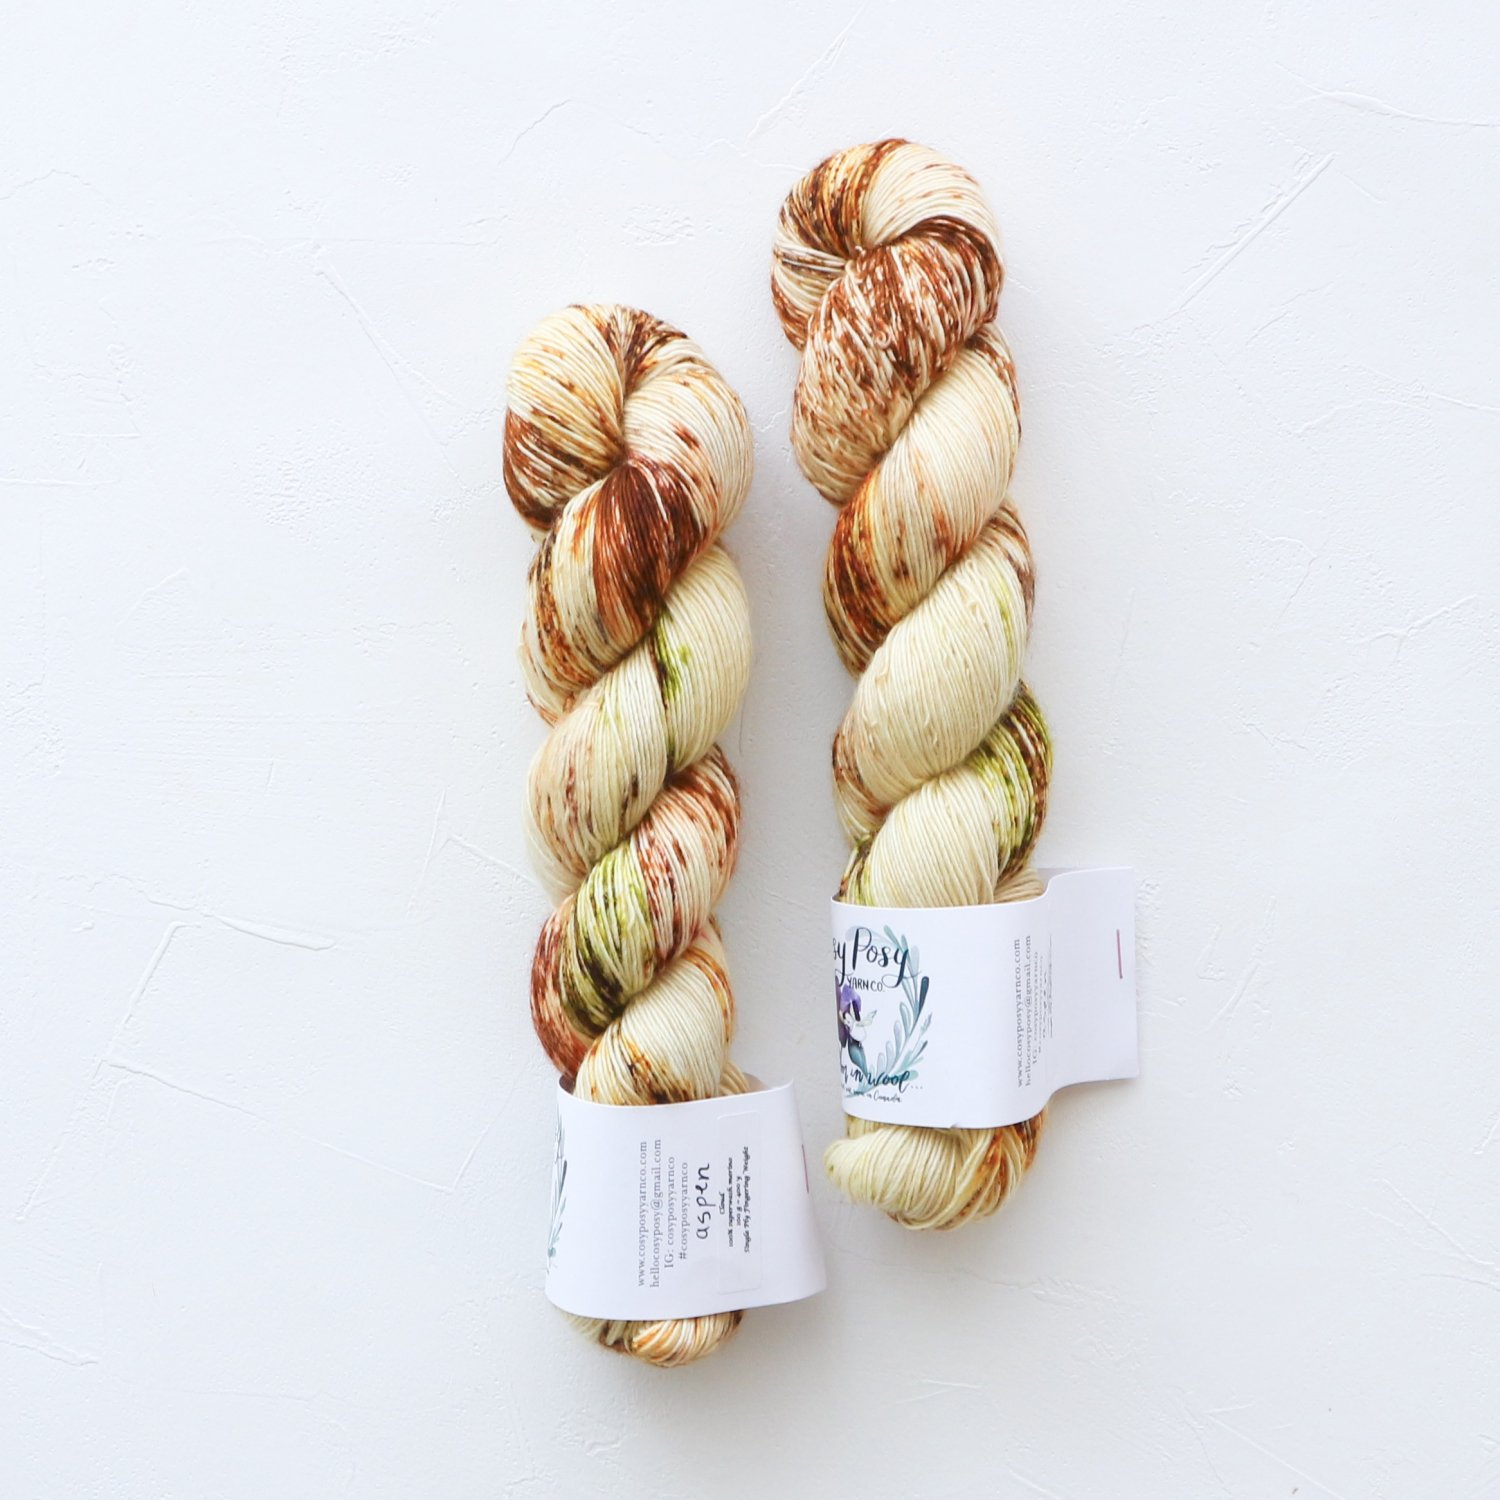 【Cosy Posy Yarn】<br>CLOUD<br>Aspen